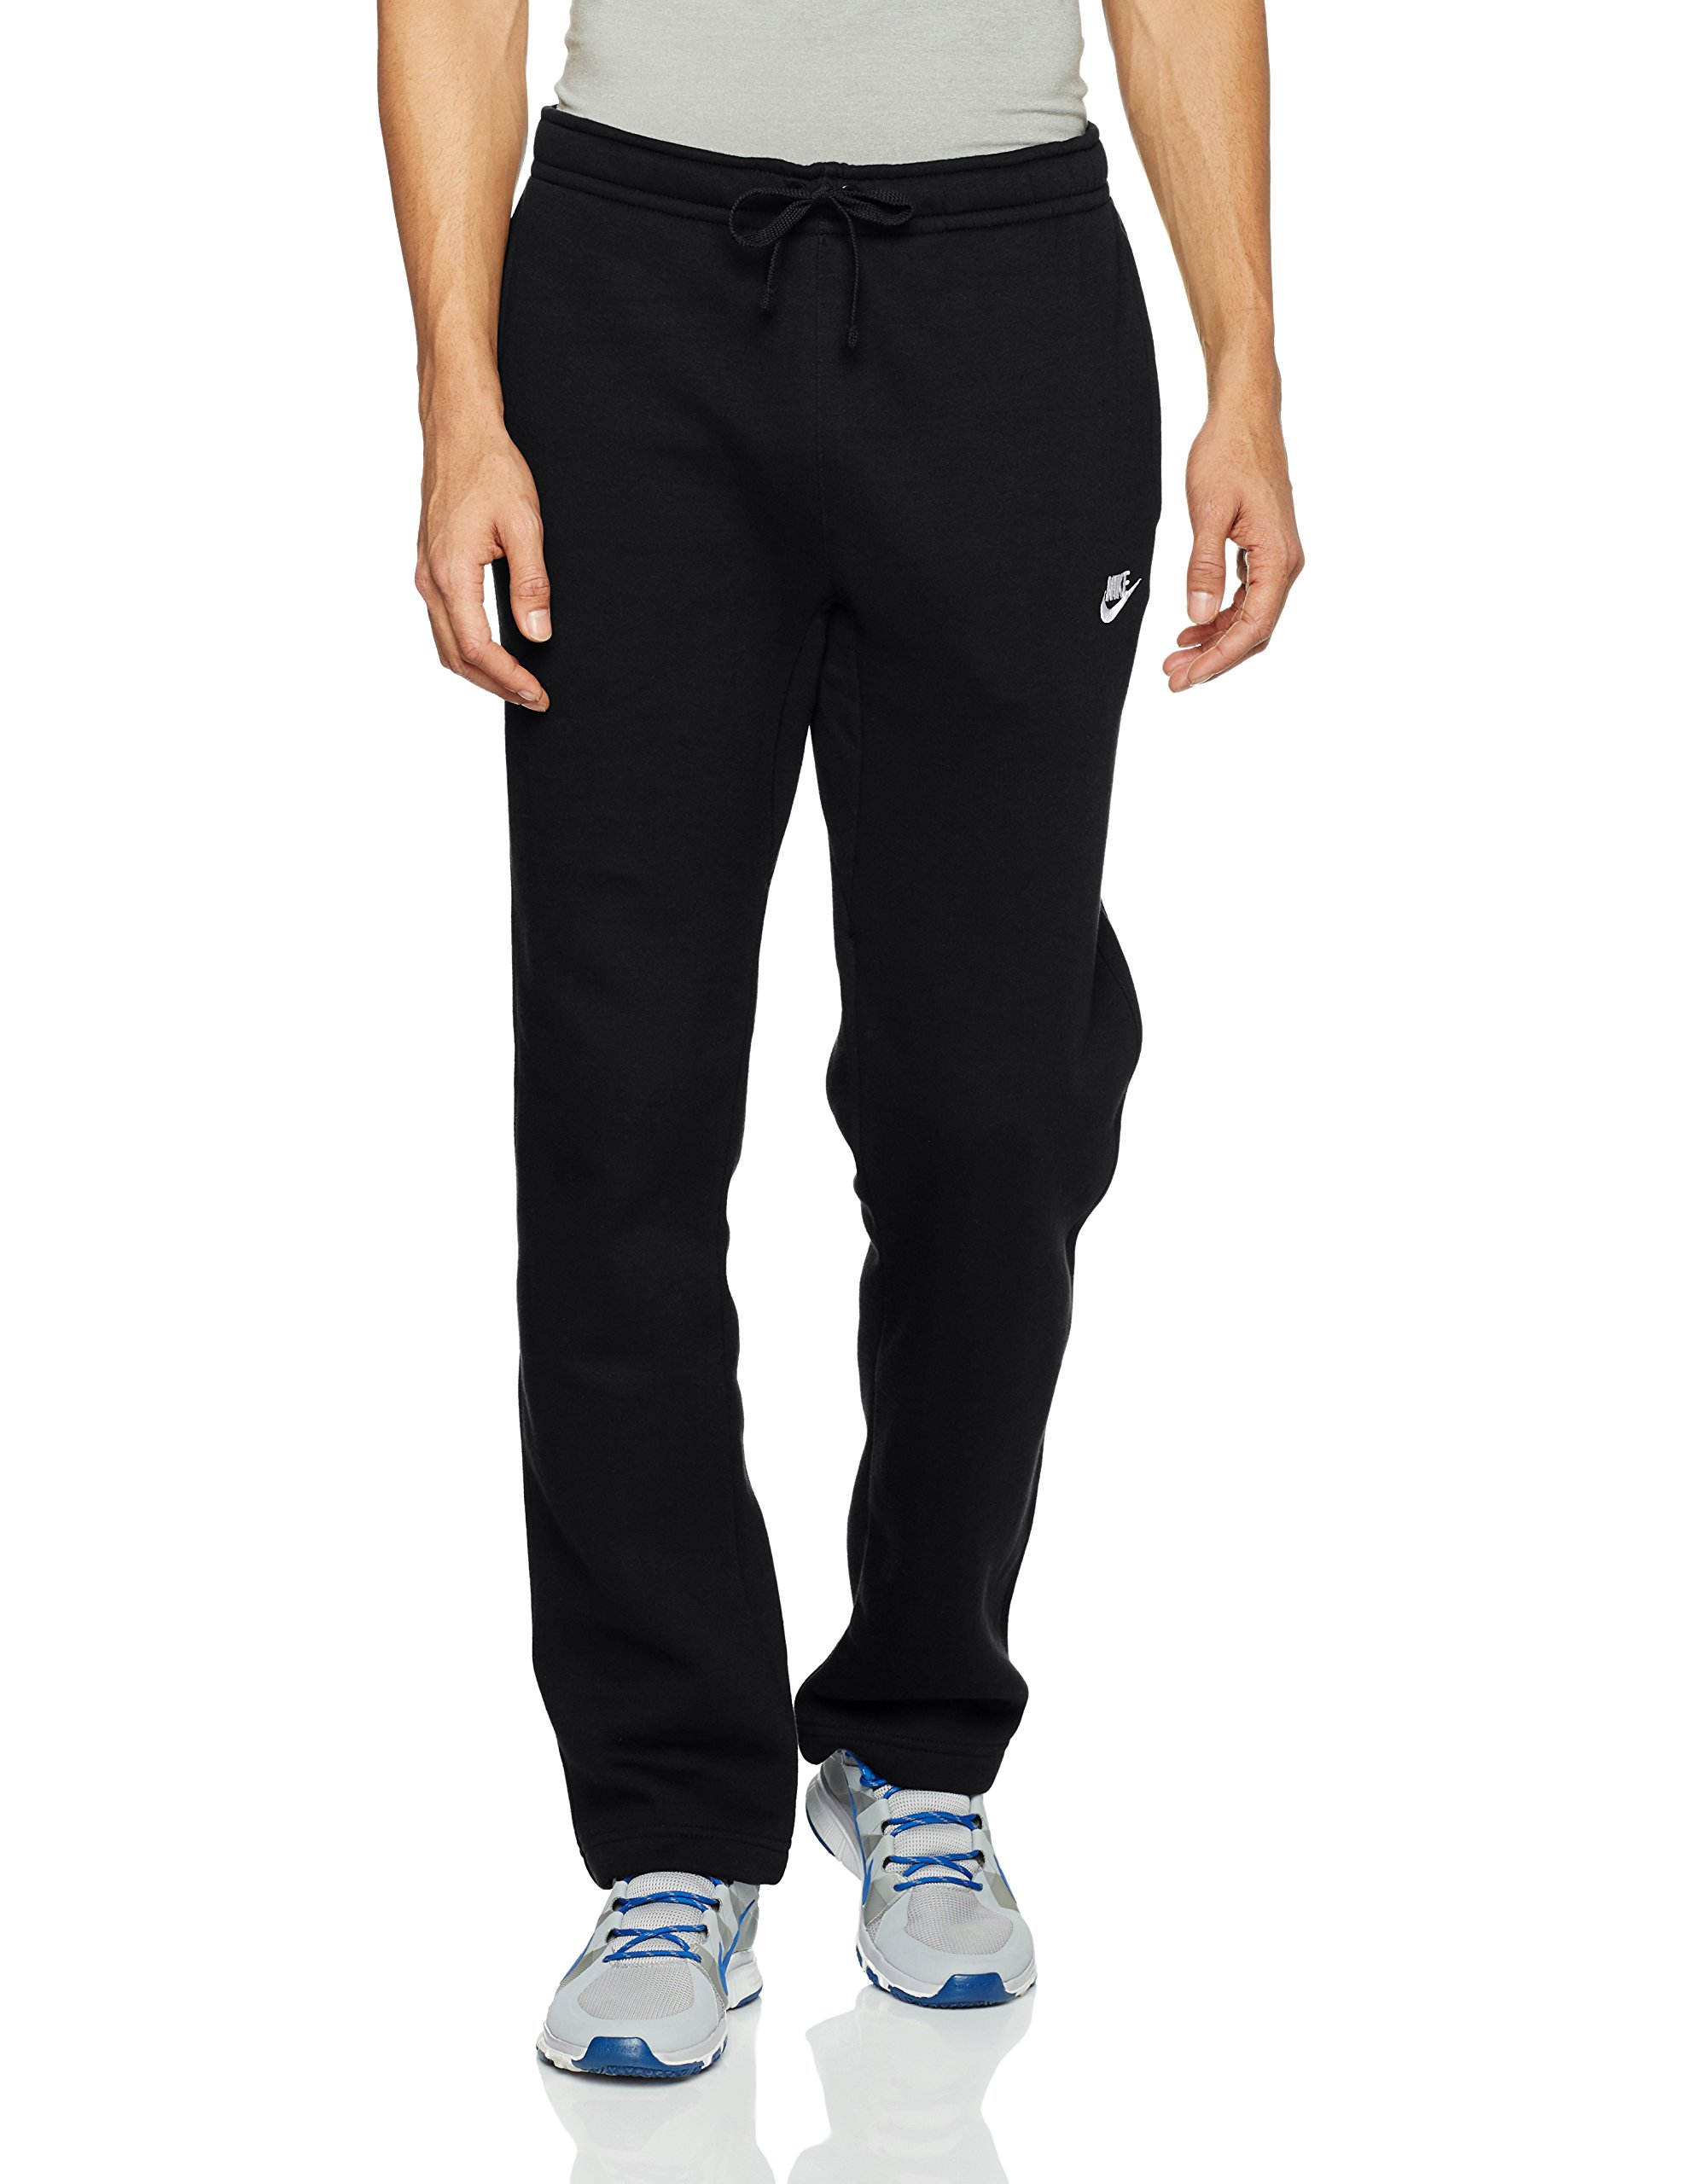 Men's Nike Sportswear Club Sweatpant, Fleece Sweatpants for Men with Pockets, Black/White, S